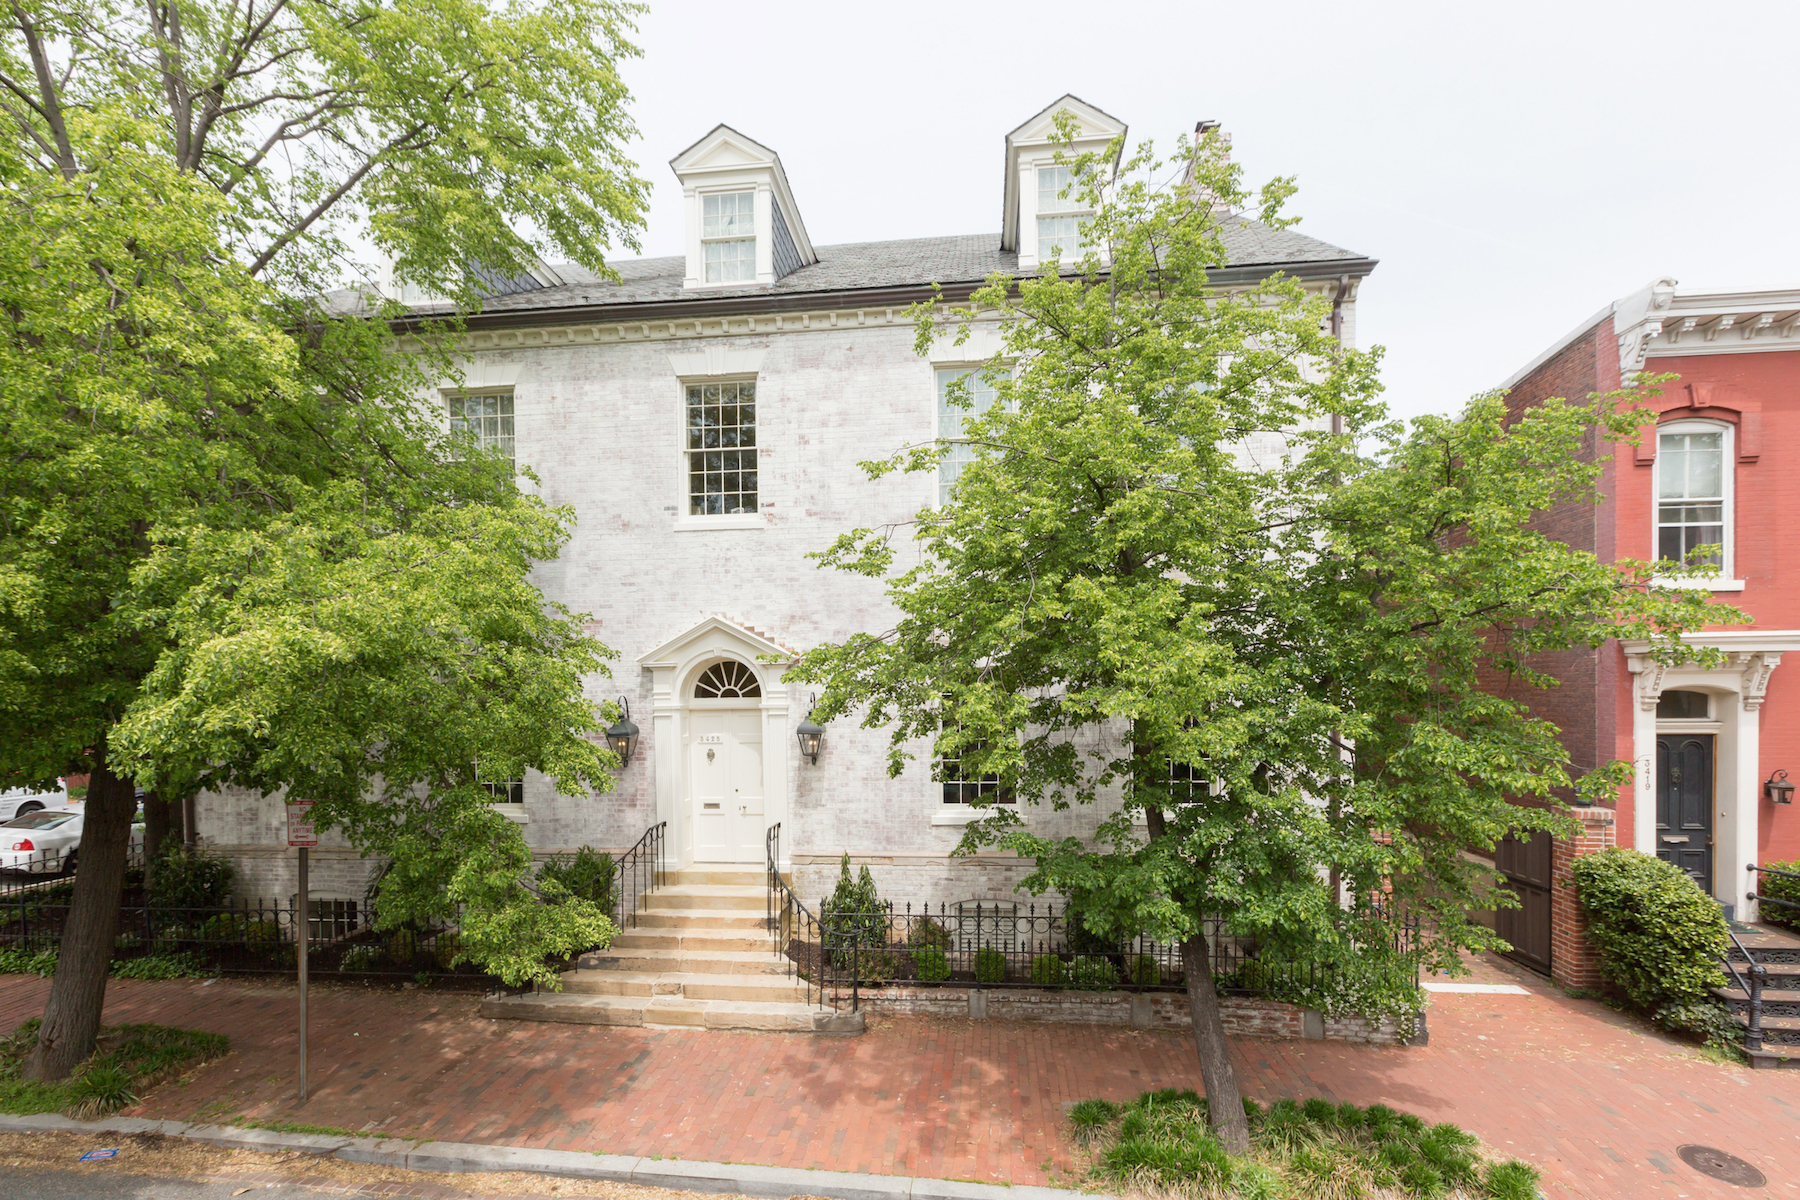 Single Family Home for Sale at Georgetown 3425 Prospect St NW Georgetown, Washington, District Of Columbia, 20007 United States